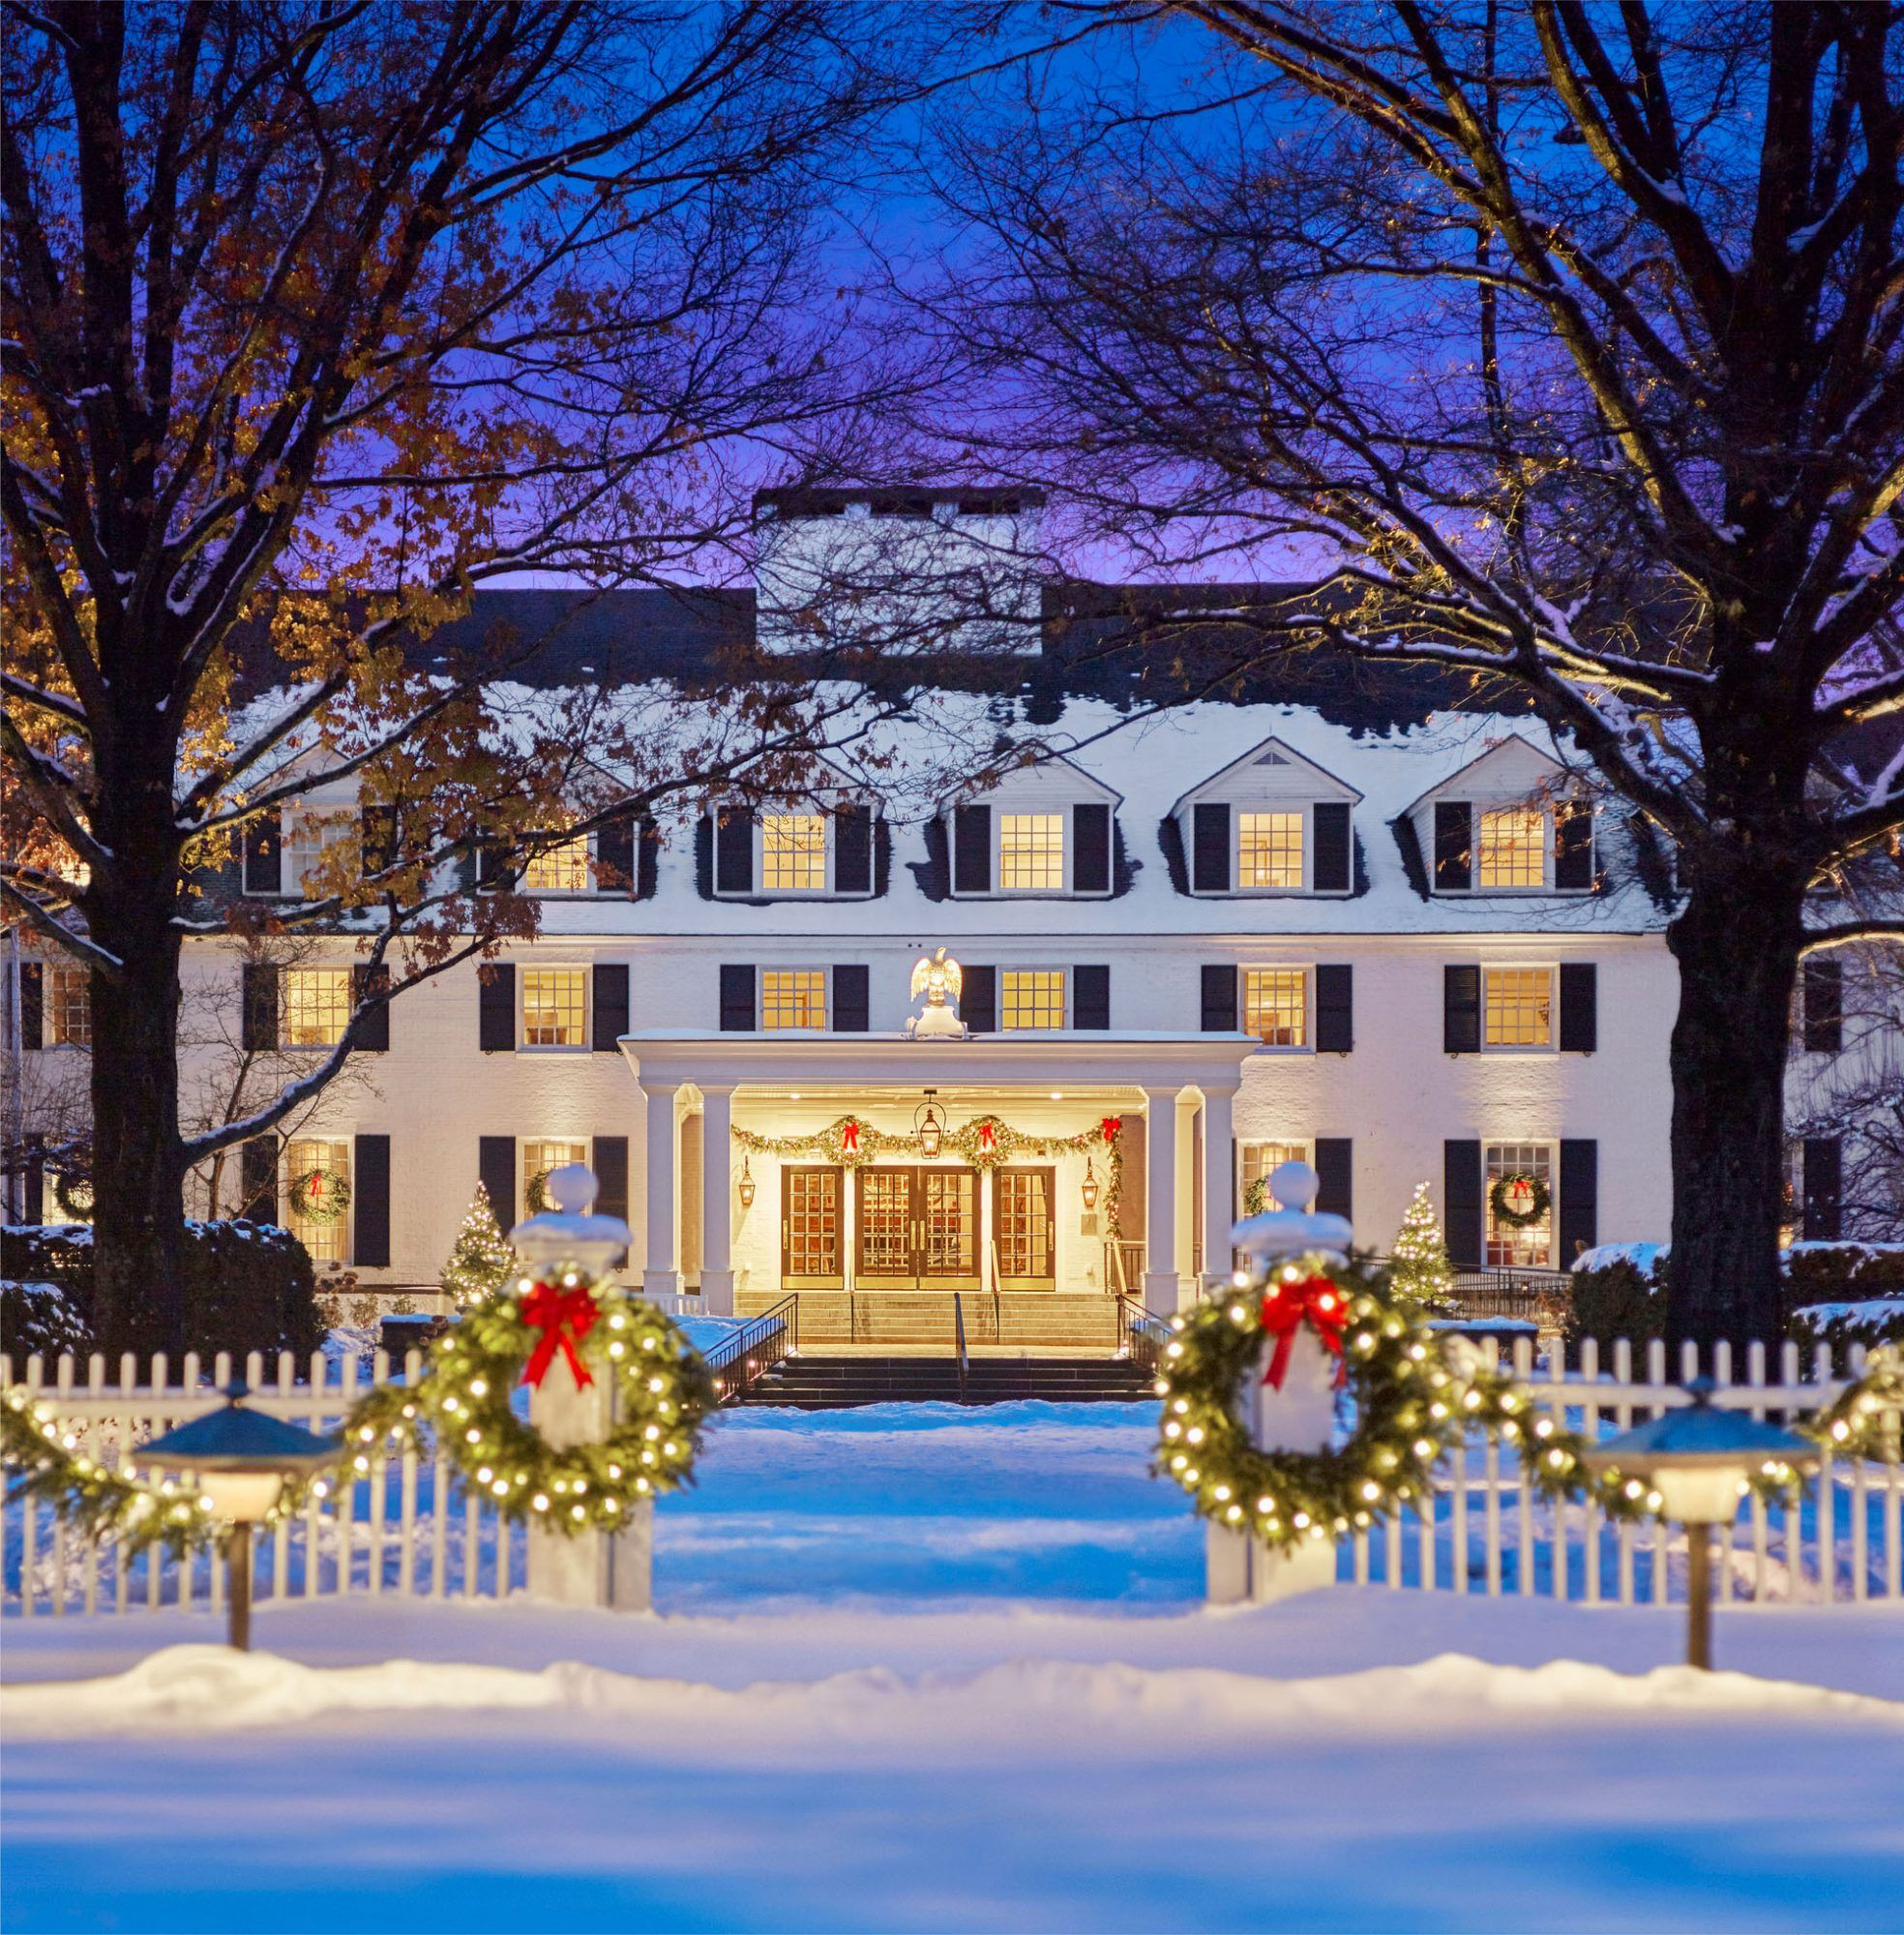 These Four U S Hotels Are Known For Their Amazing Holiday